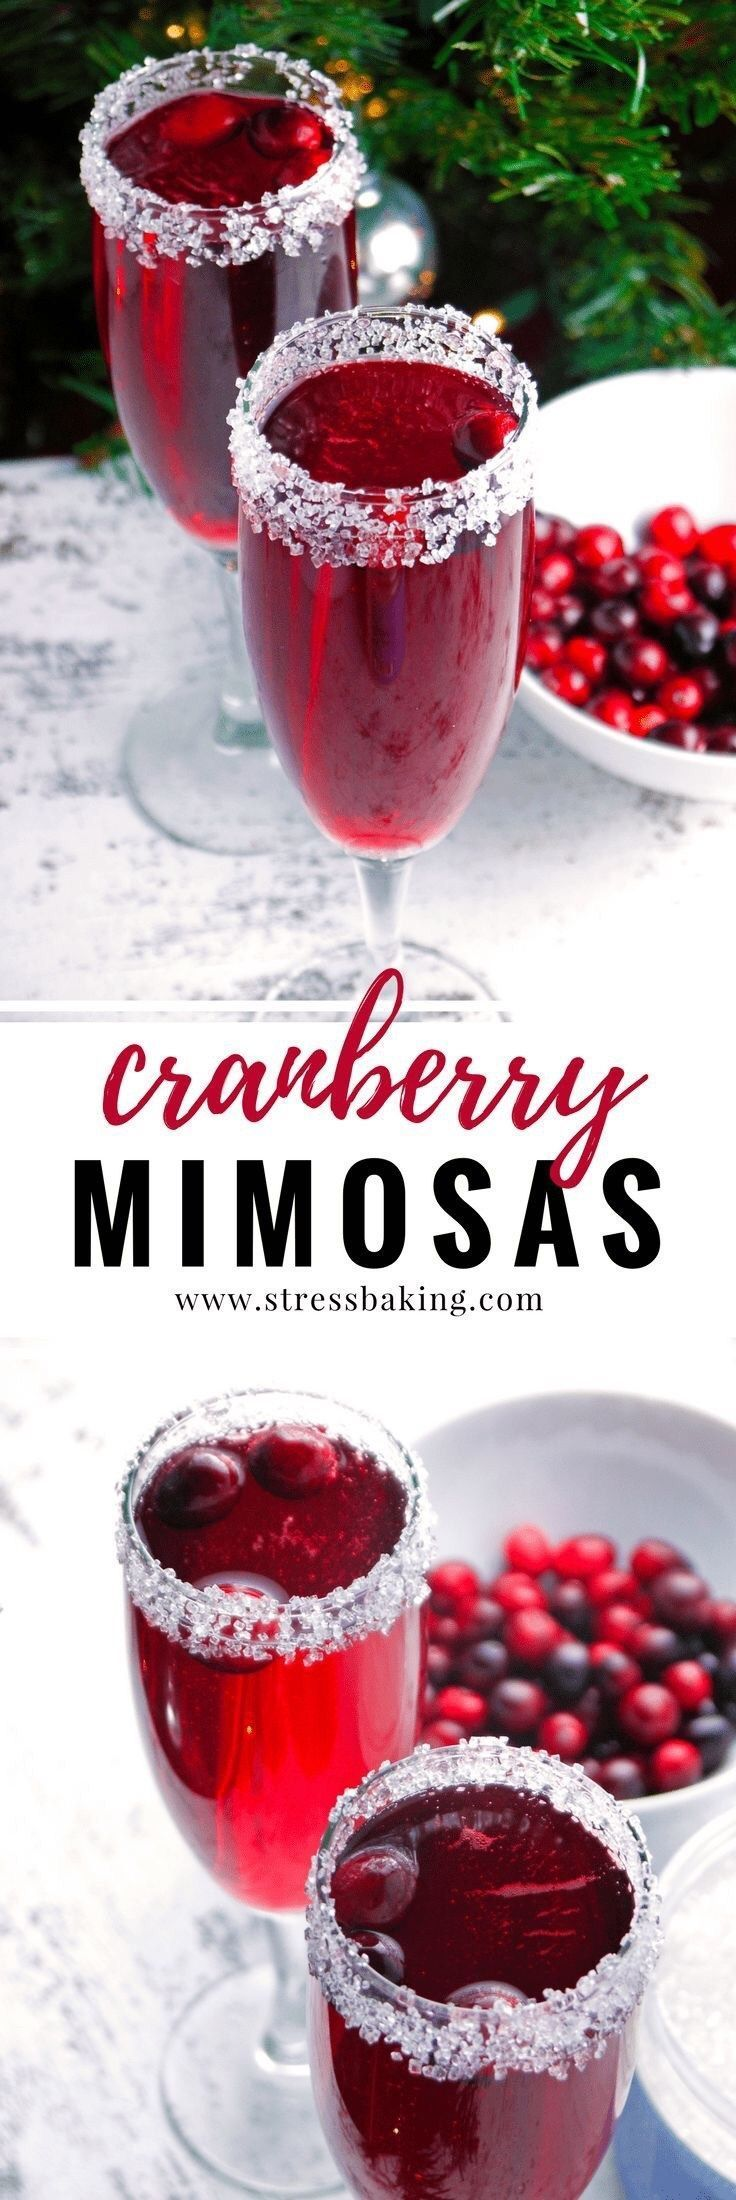 Cranberry mimosa recipe christmas drinks perfect